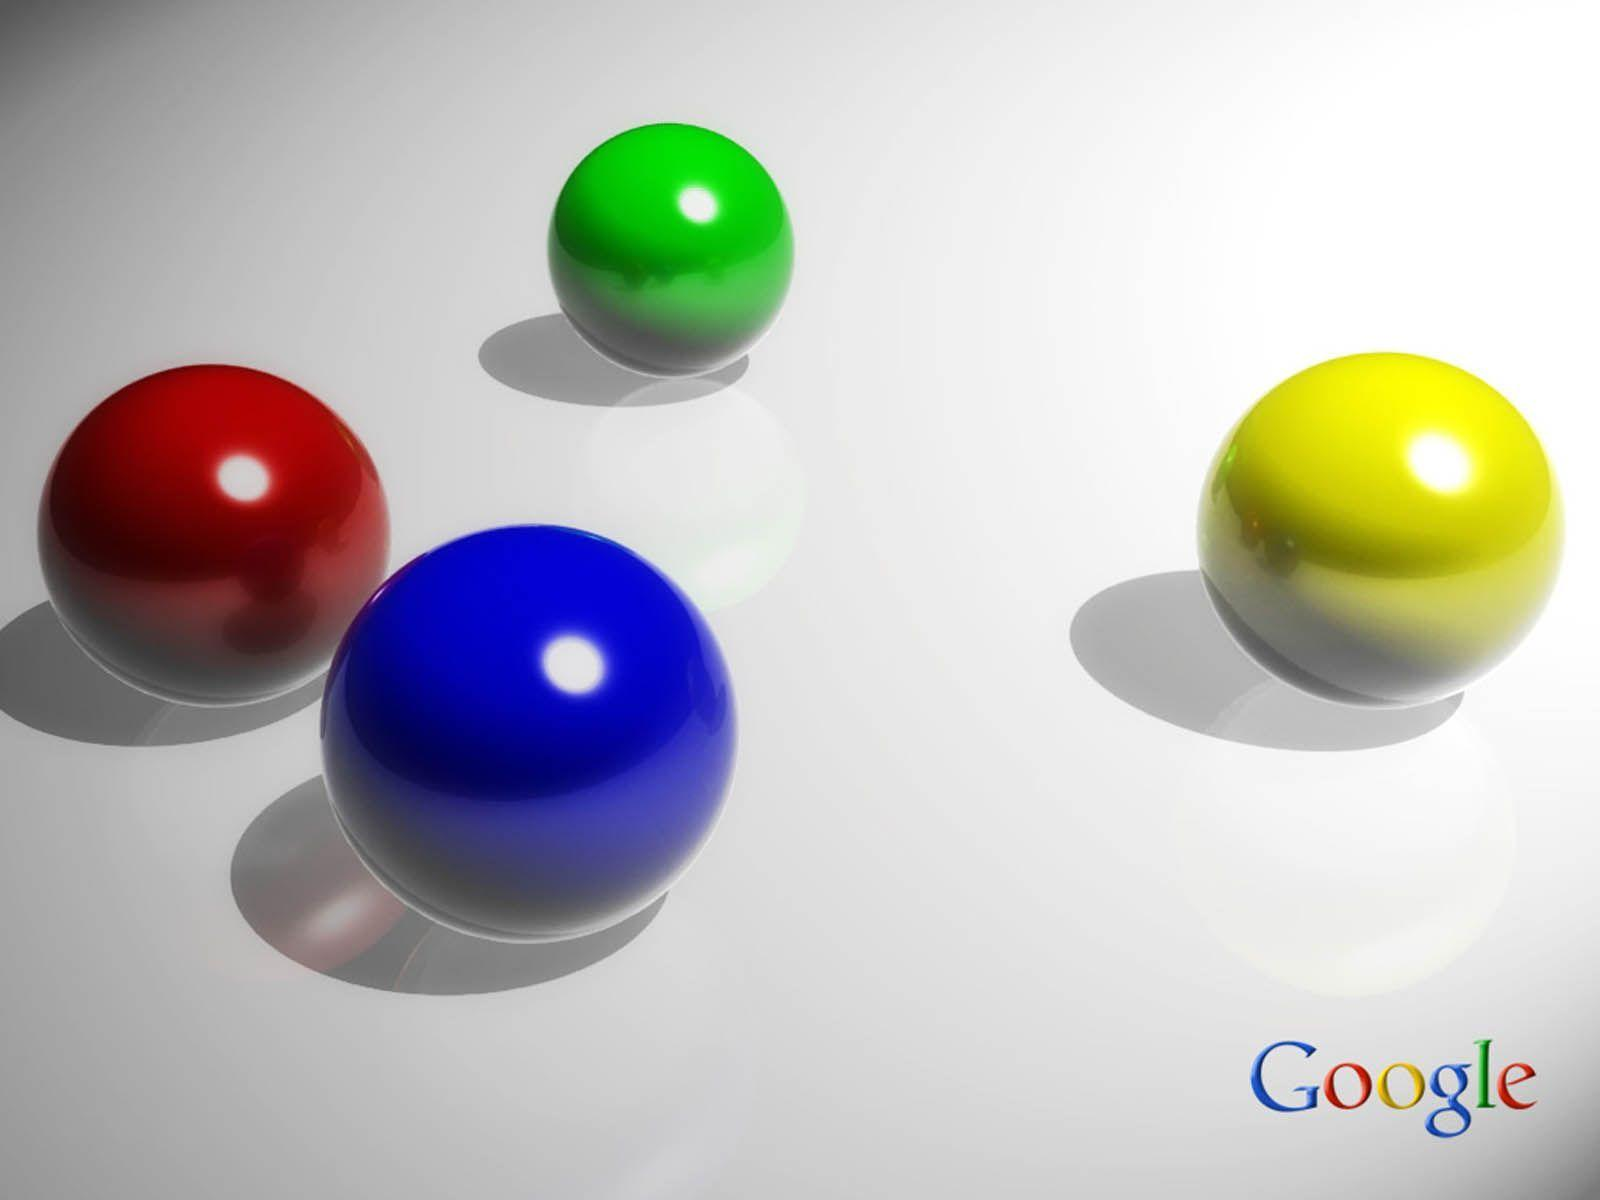 grijze google desktop hd - photo #8